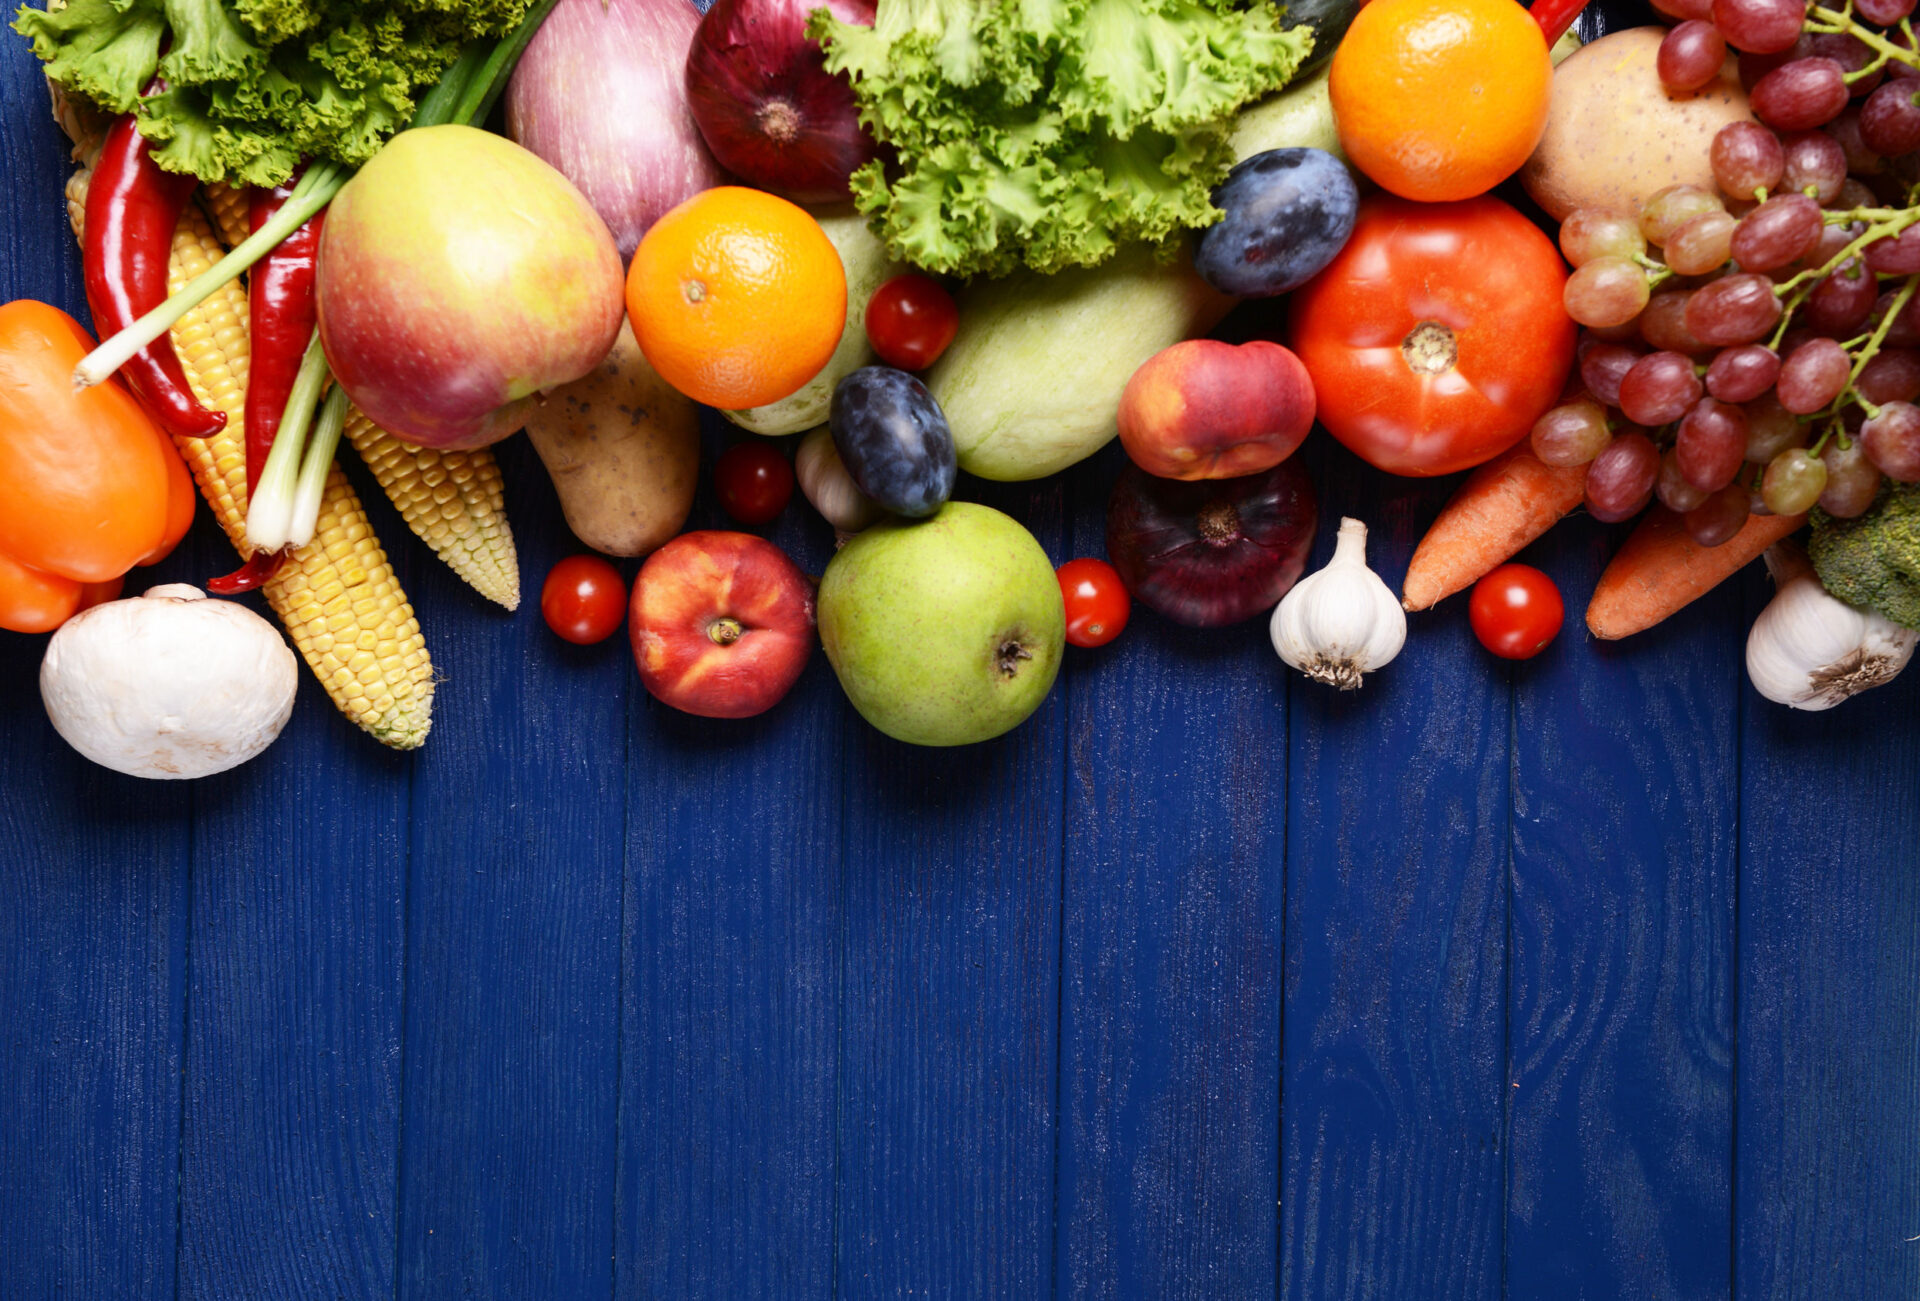 36490757 - fresh organic fruits and vegetables on wooden background